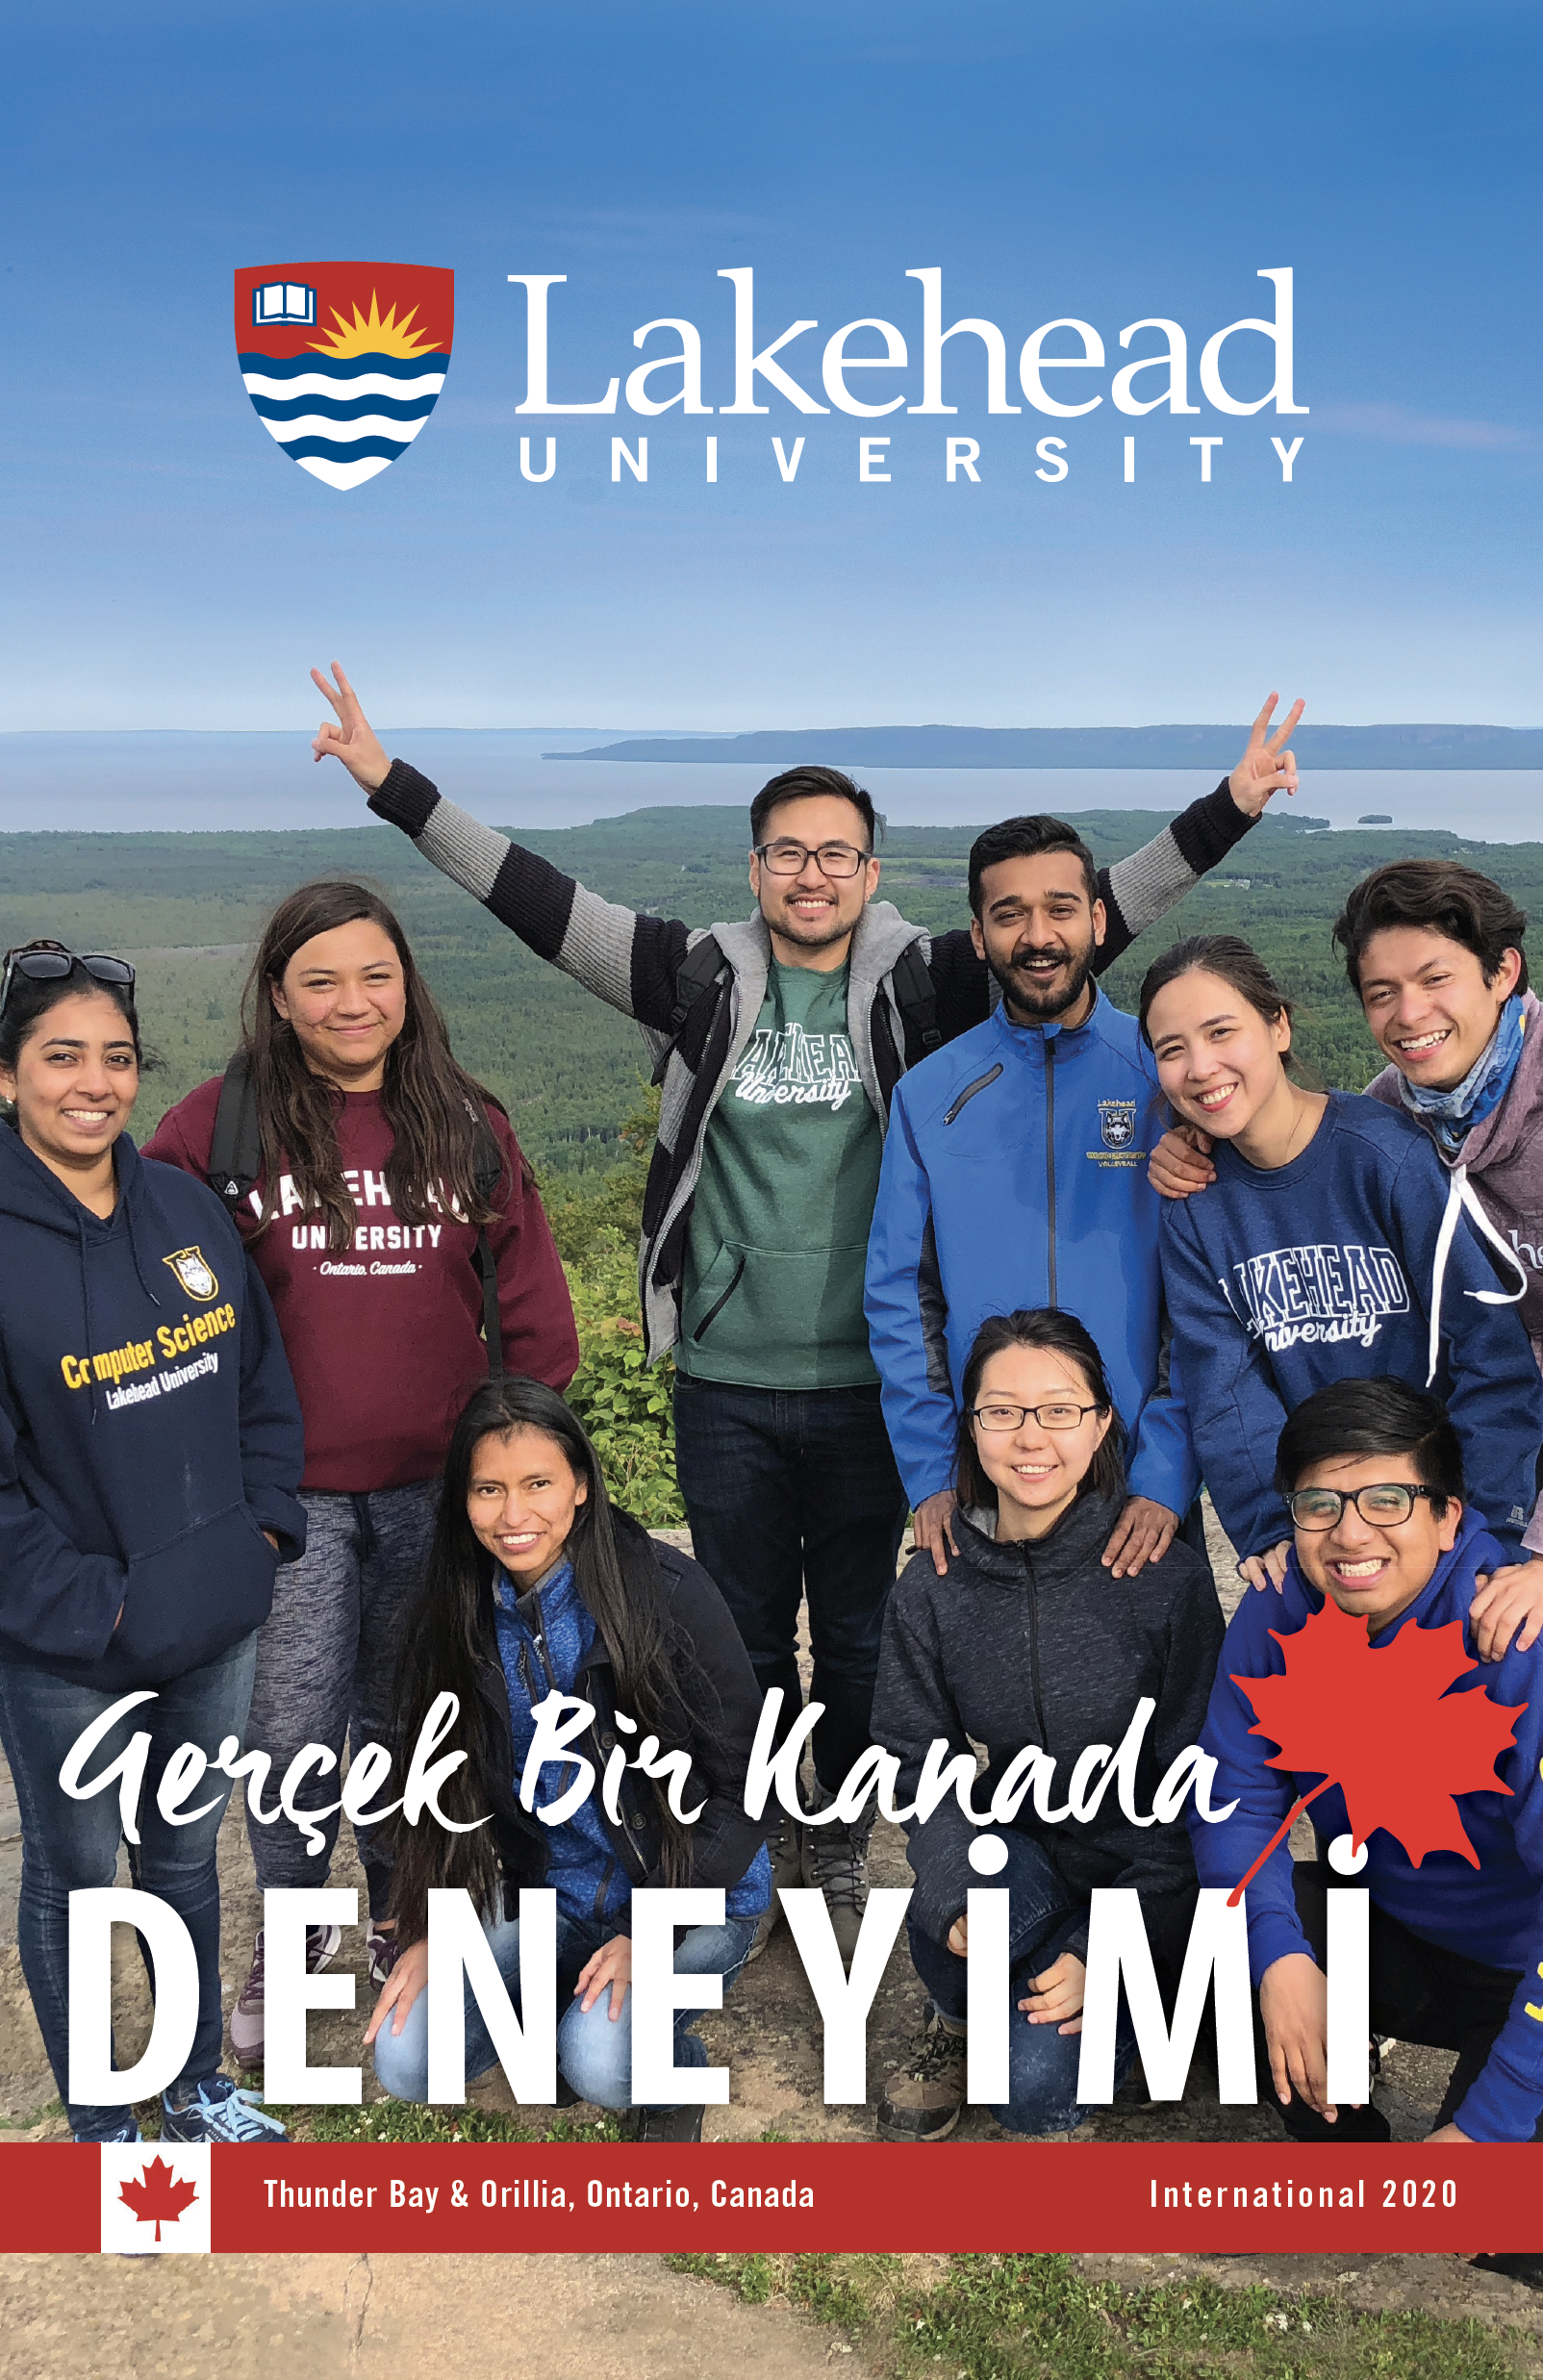 The cover of the 2020 Lakehead International Brochure in Turkish.